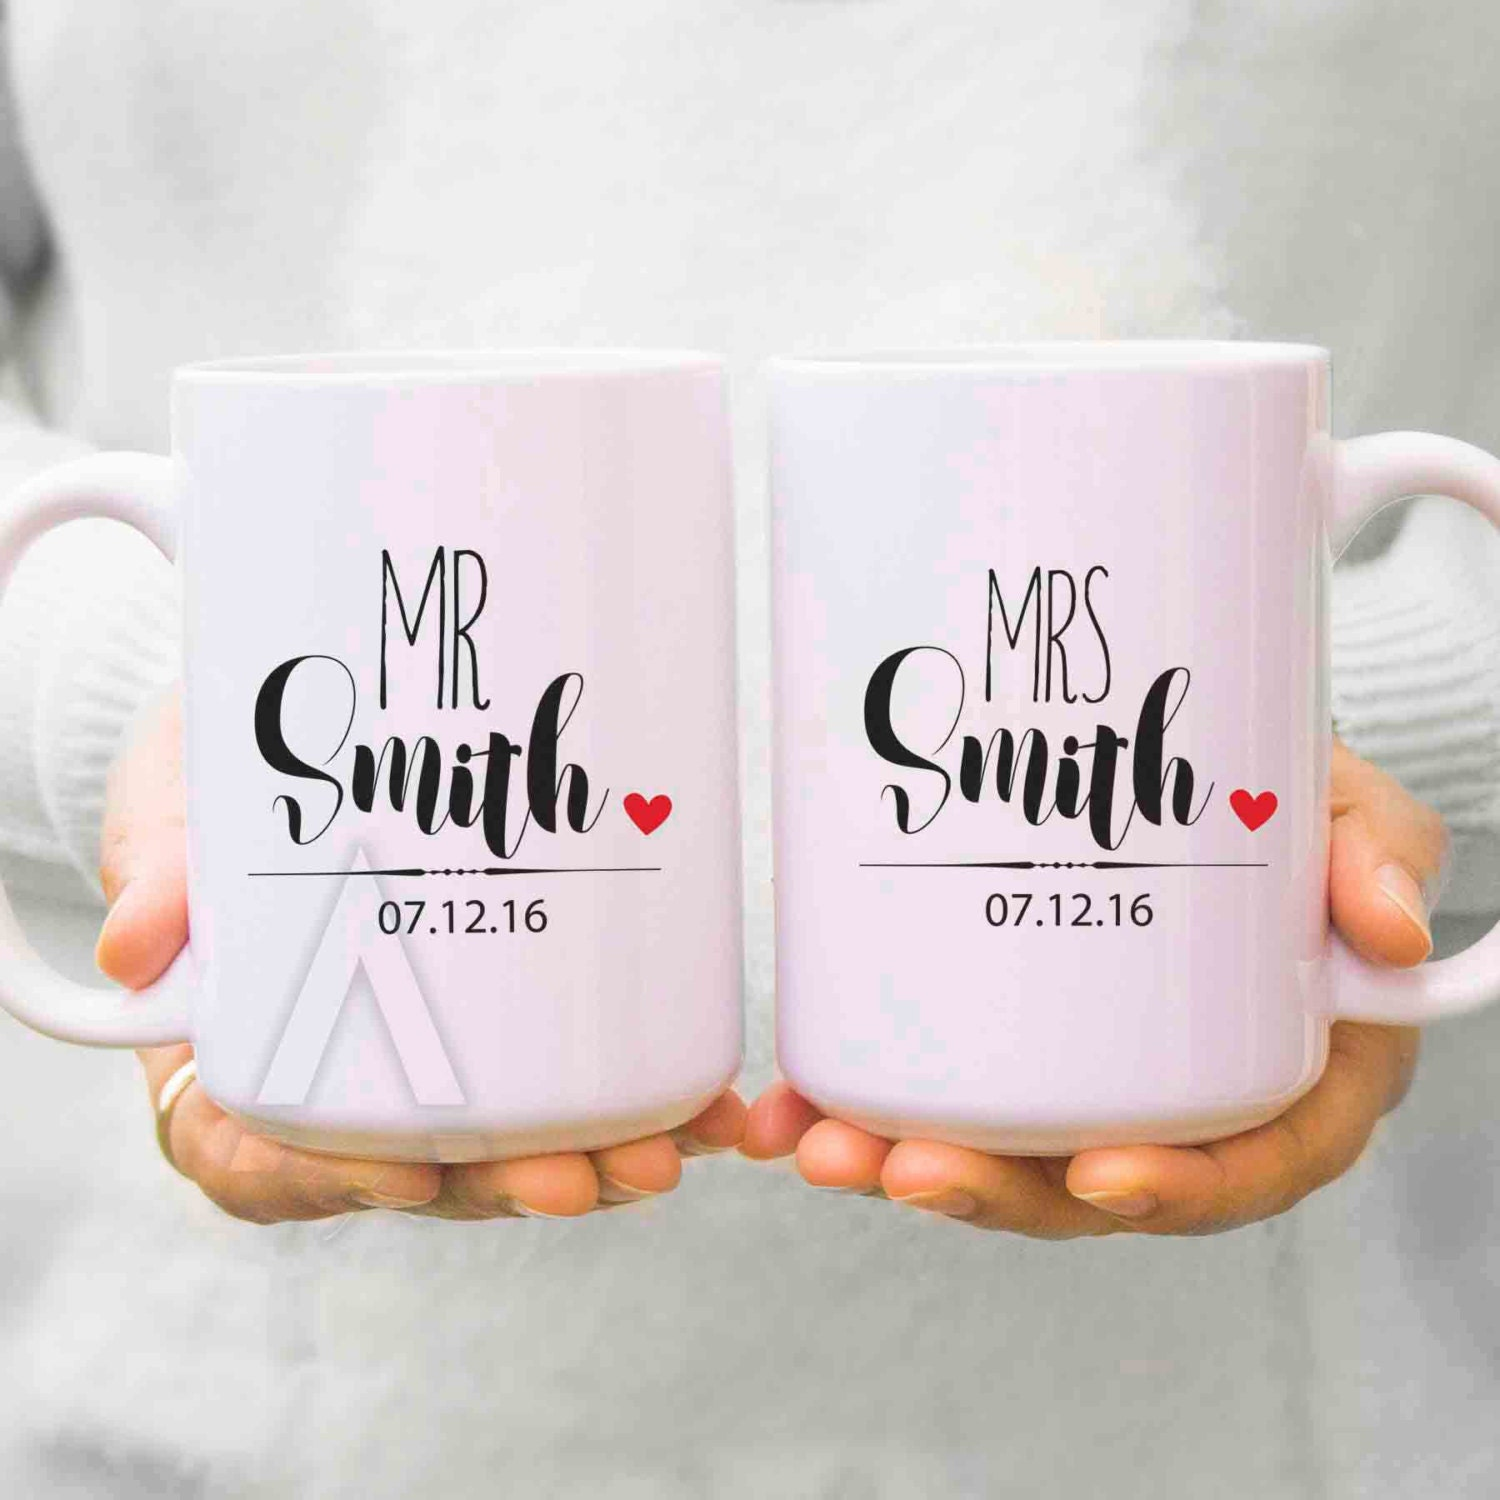 Gifts For Paper Wedding Anniversary: Paper Anniversary Gift Wedding Anniversary Gifts First